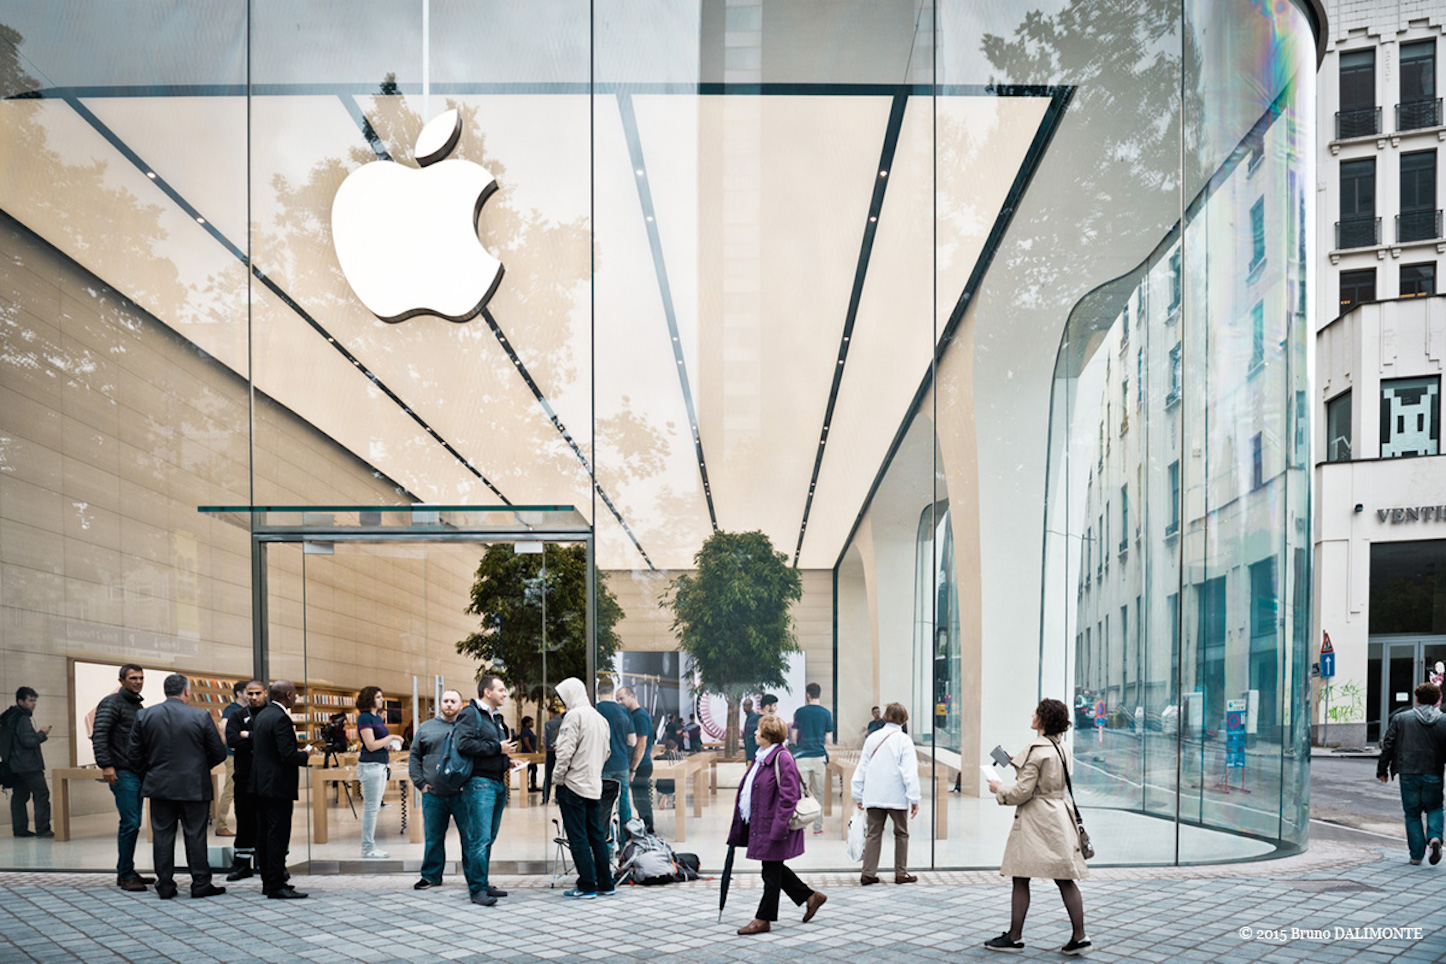 jony-ive-designed-apple-store-3.jpg